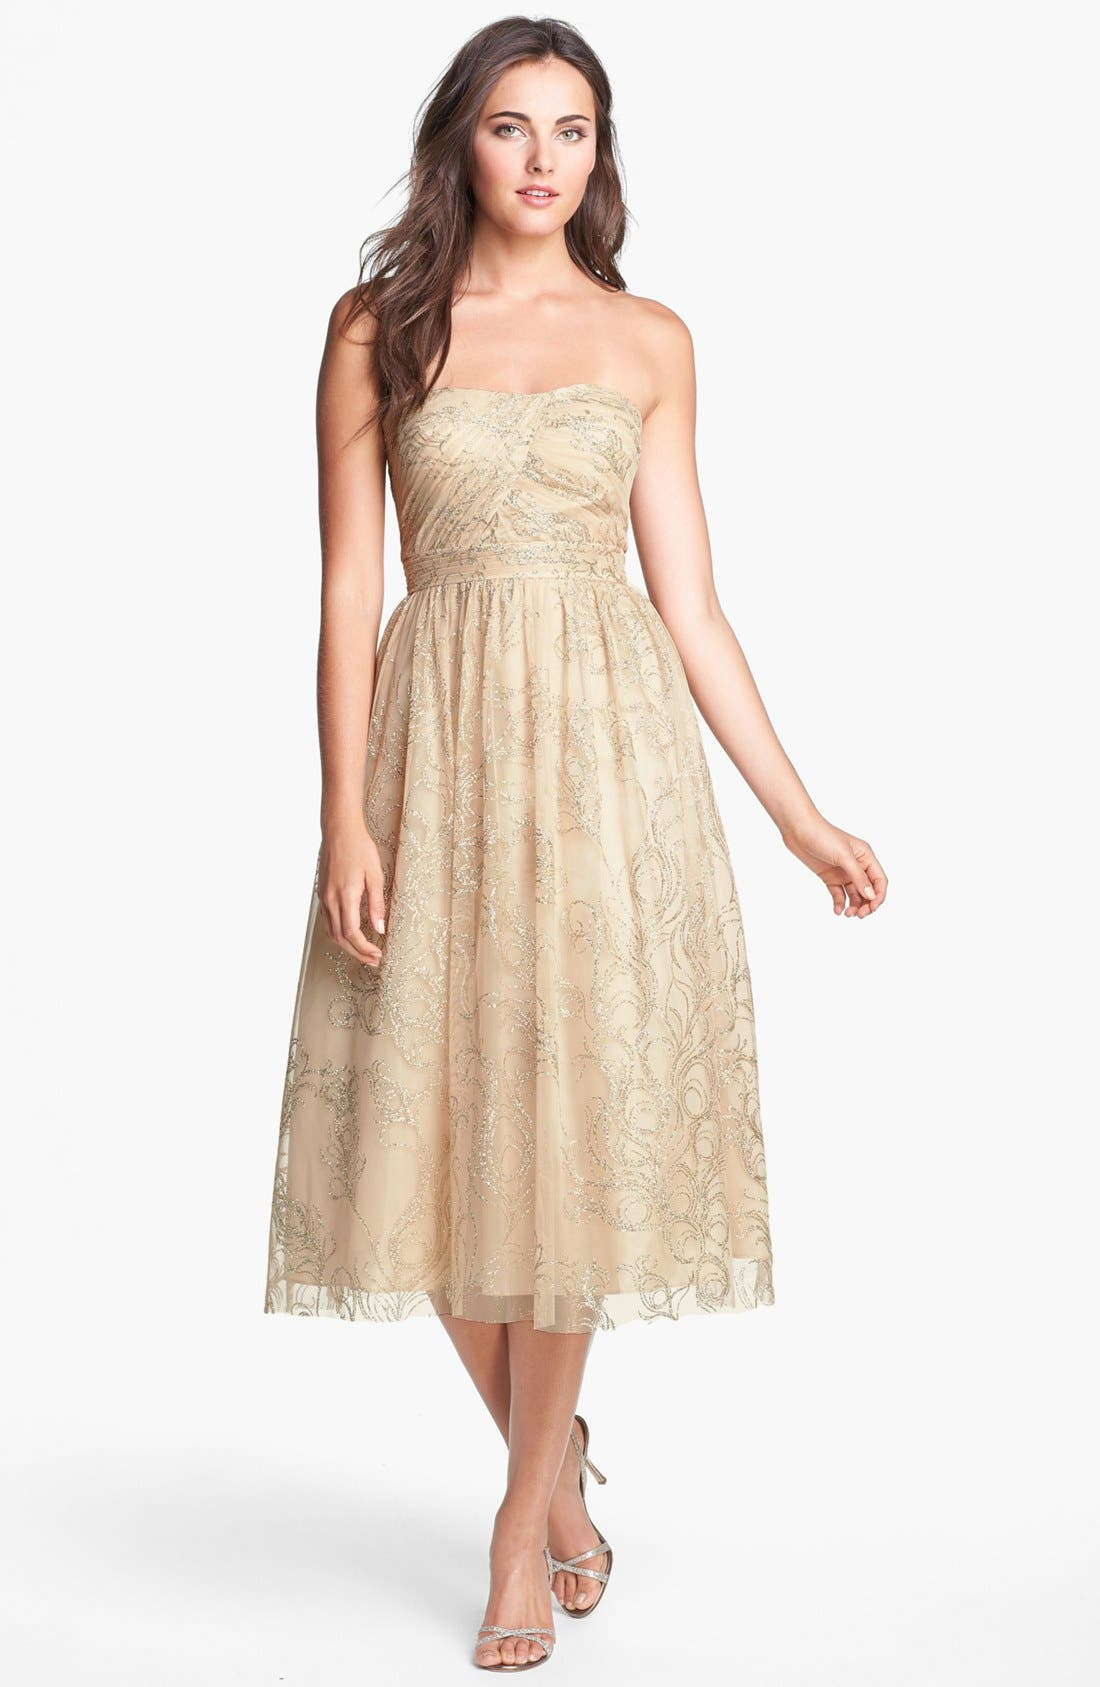 Main Image - Hailey by Adrianna Papell Glitter Print Tulle Fit & Flare Dress